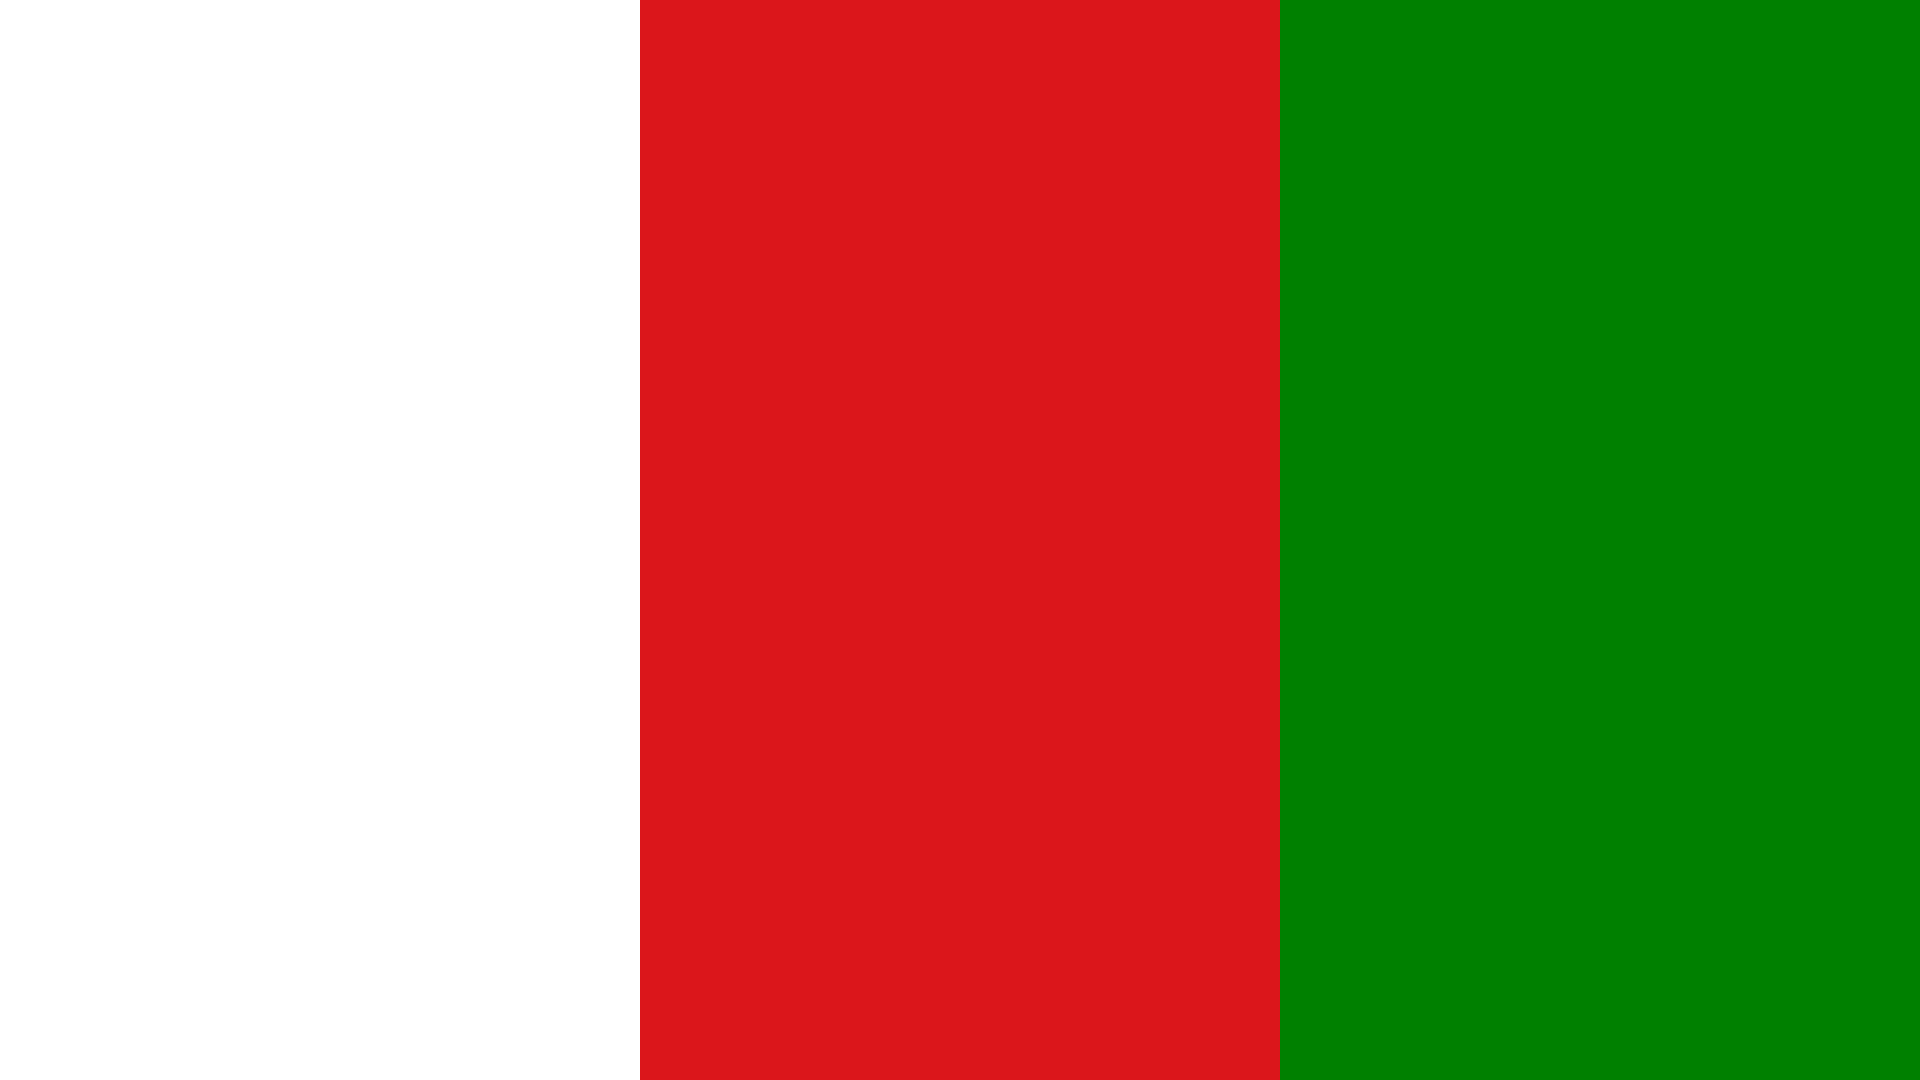 Oman Flag Colors In 2020 Flag Colors Oman Flag Color Palette